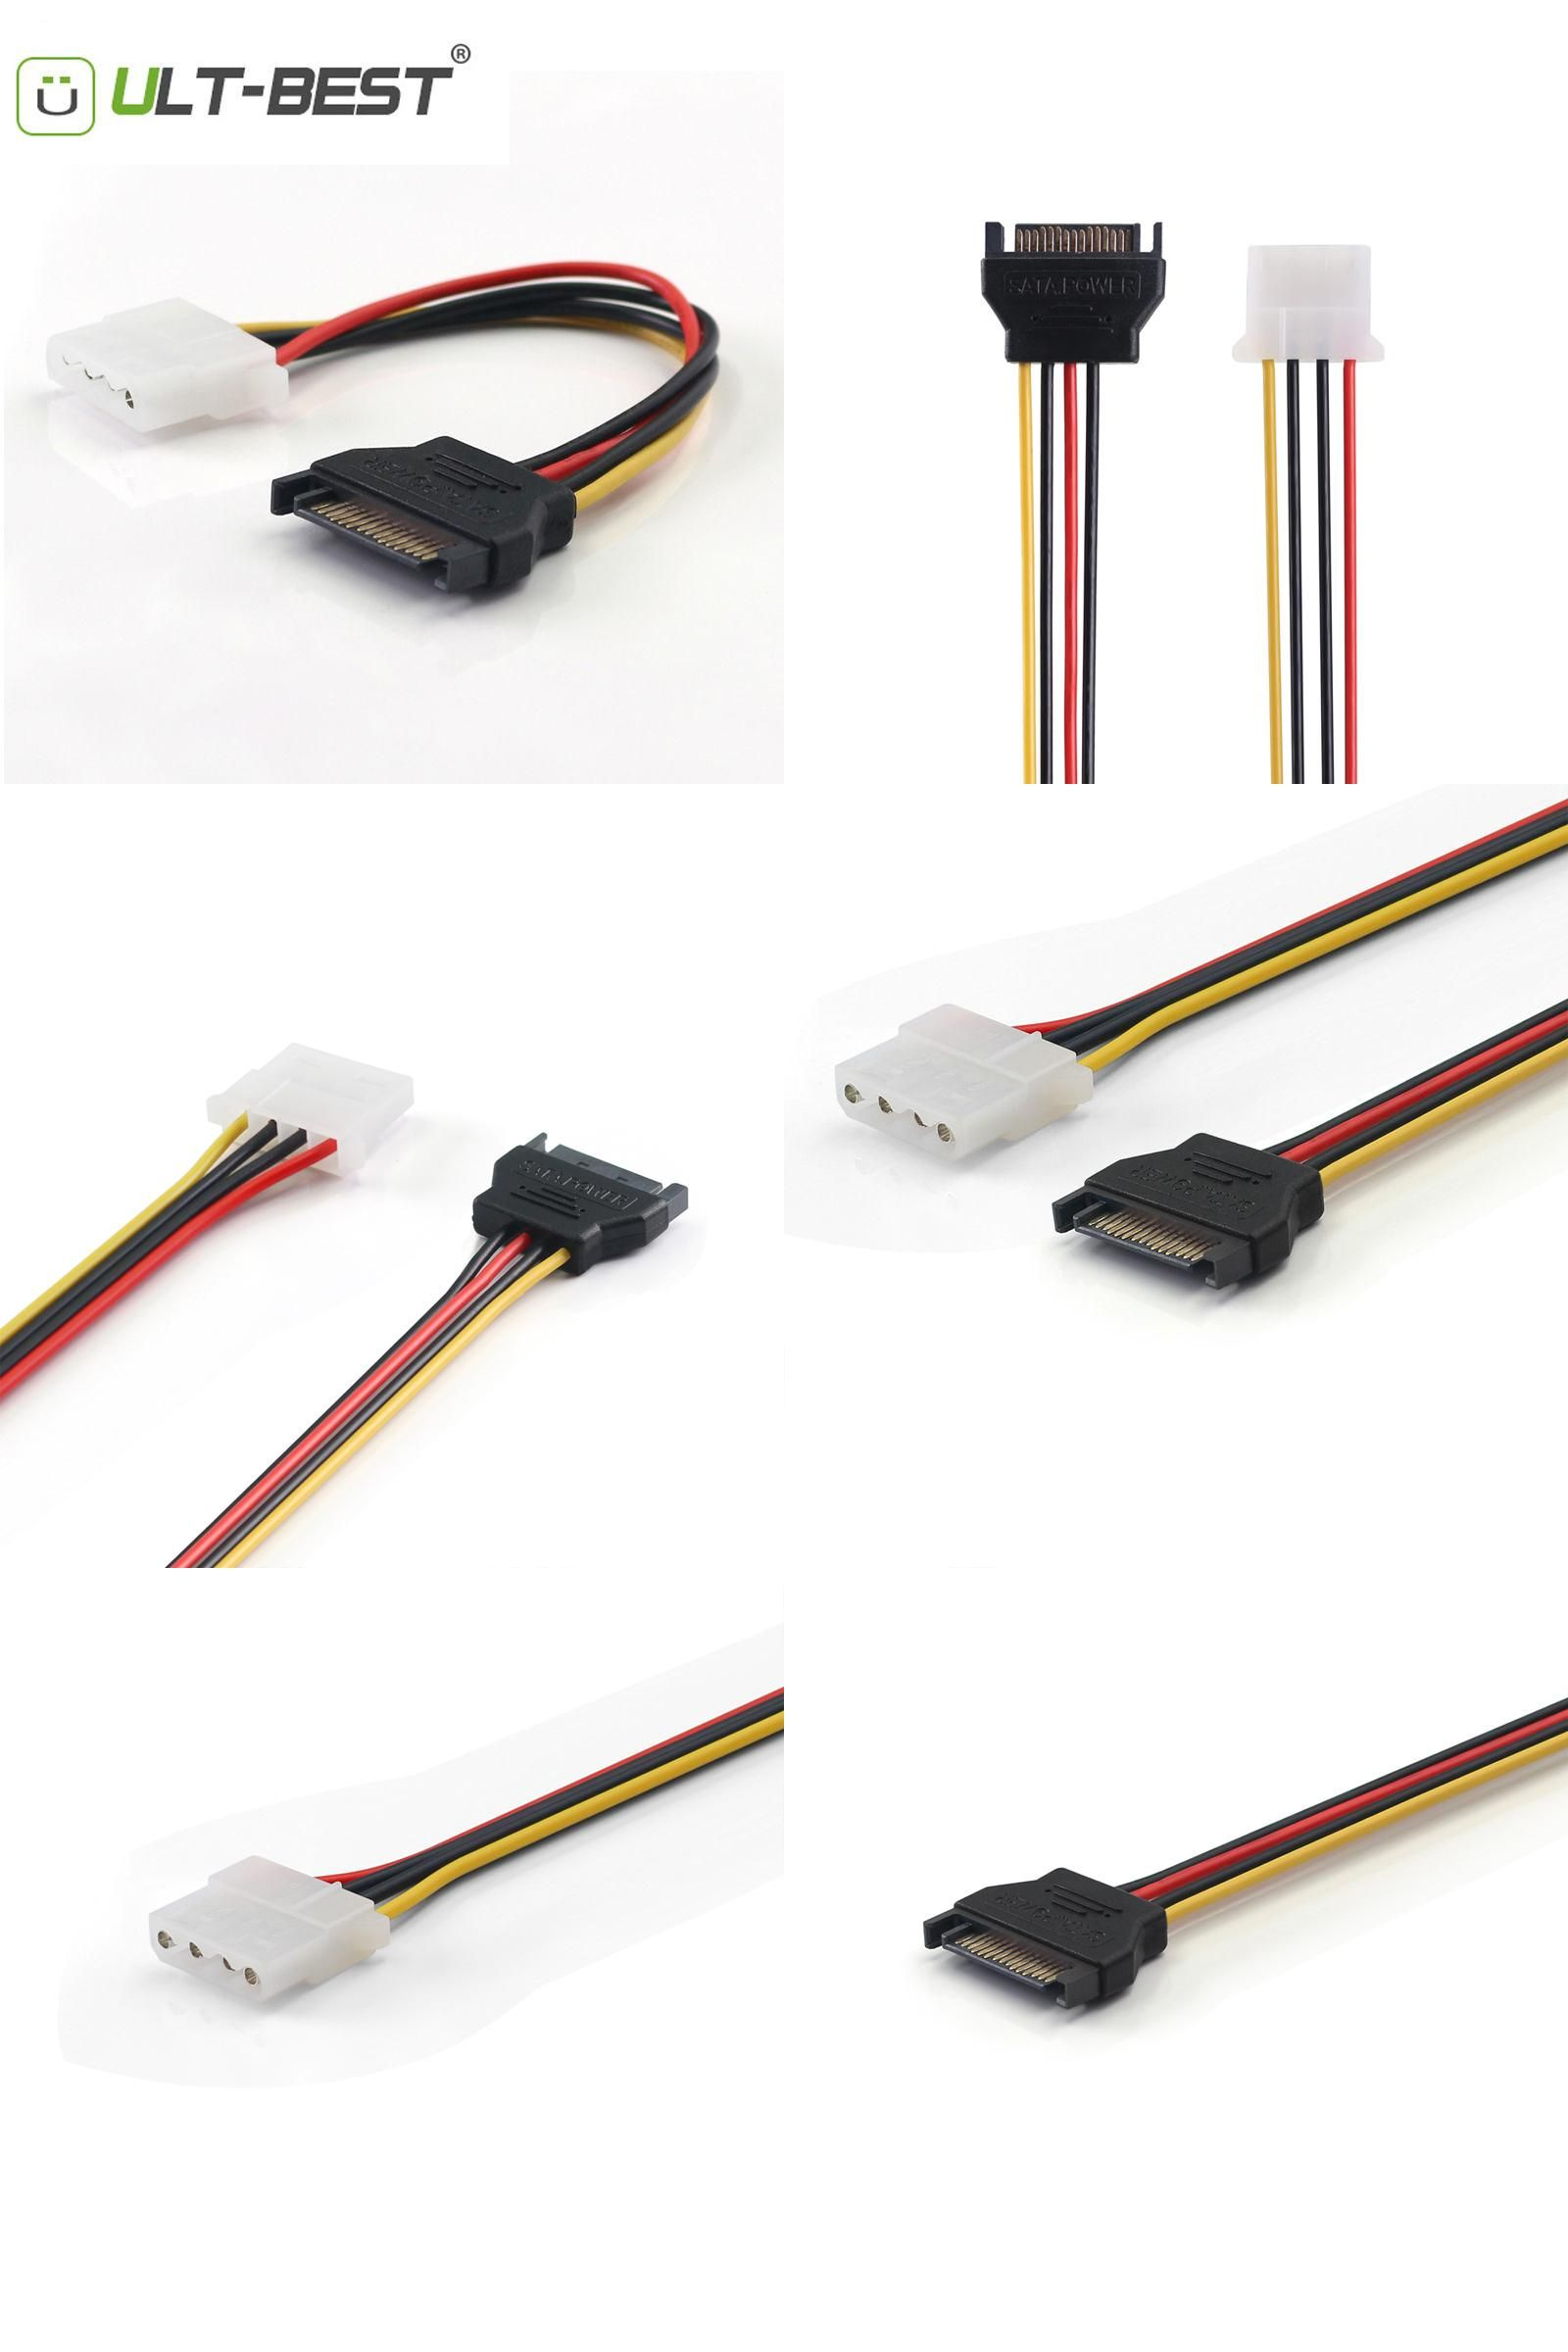 Visit To Buy Ult Best Sata Power Extension Cable Serial Ata 15pin Slimline Connector 6 Pin Male